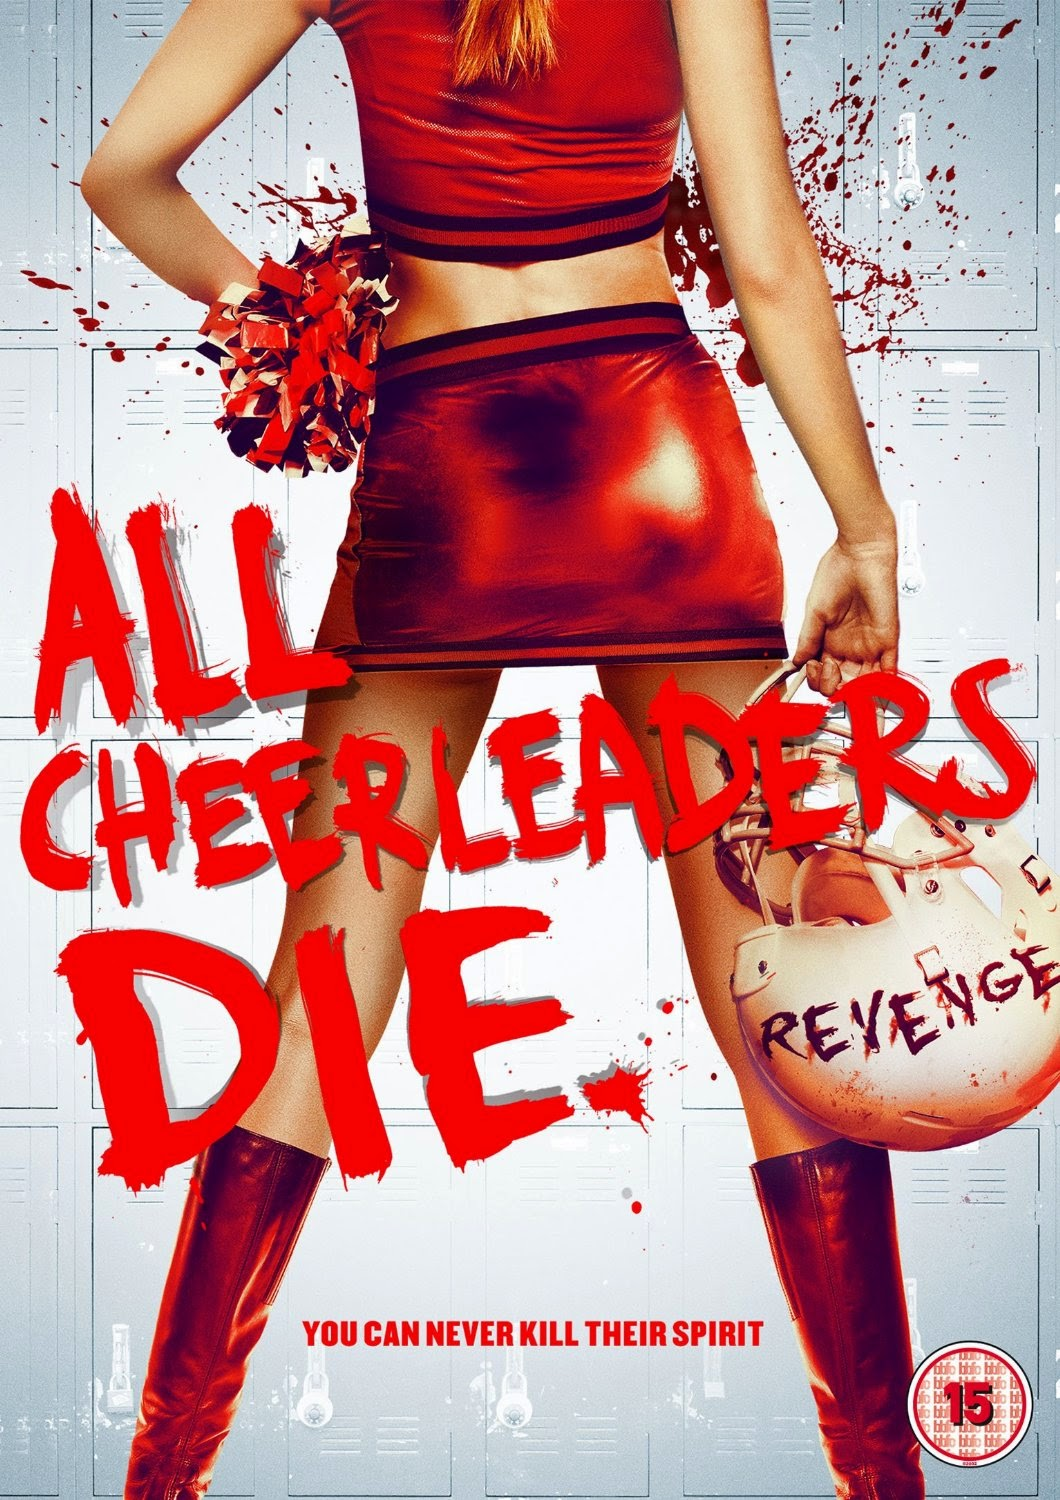 All cheerleaders die agree, very